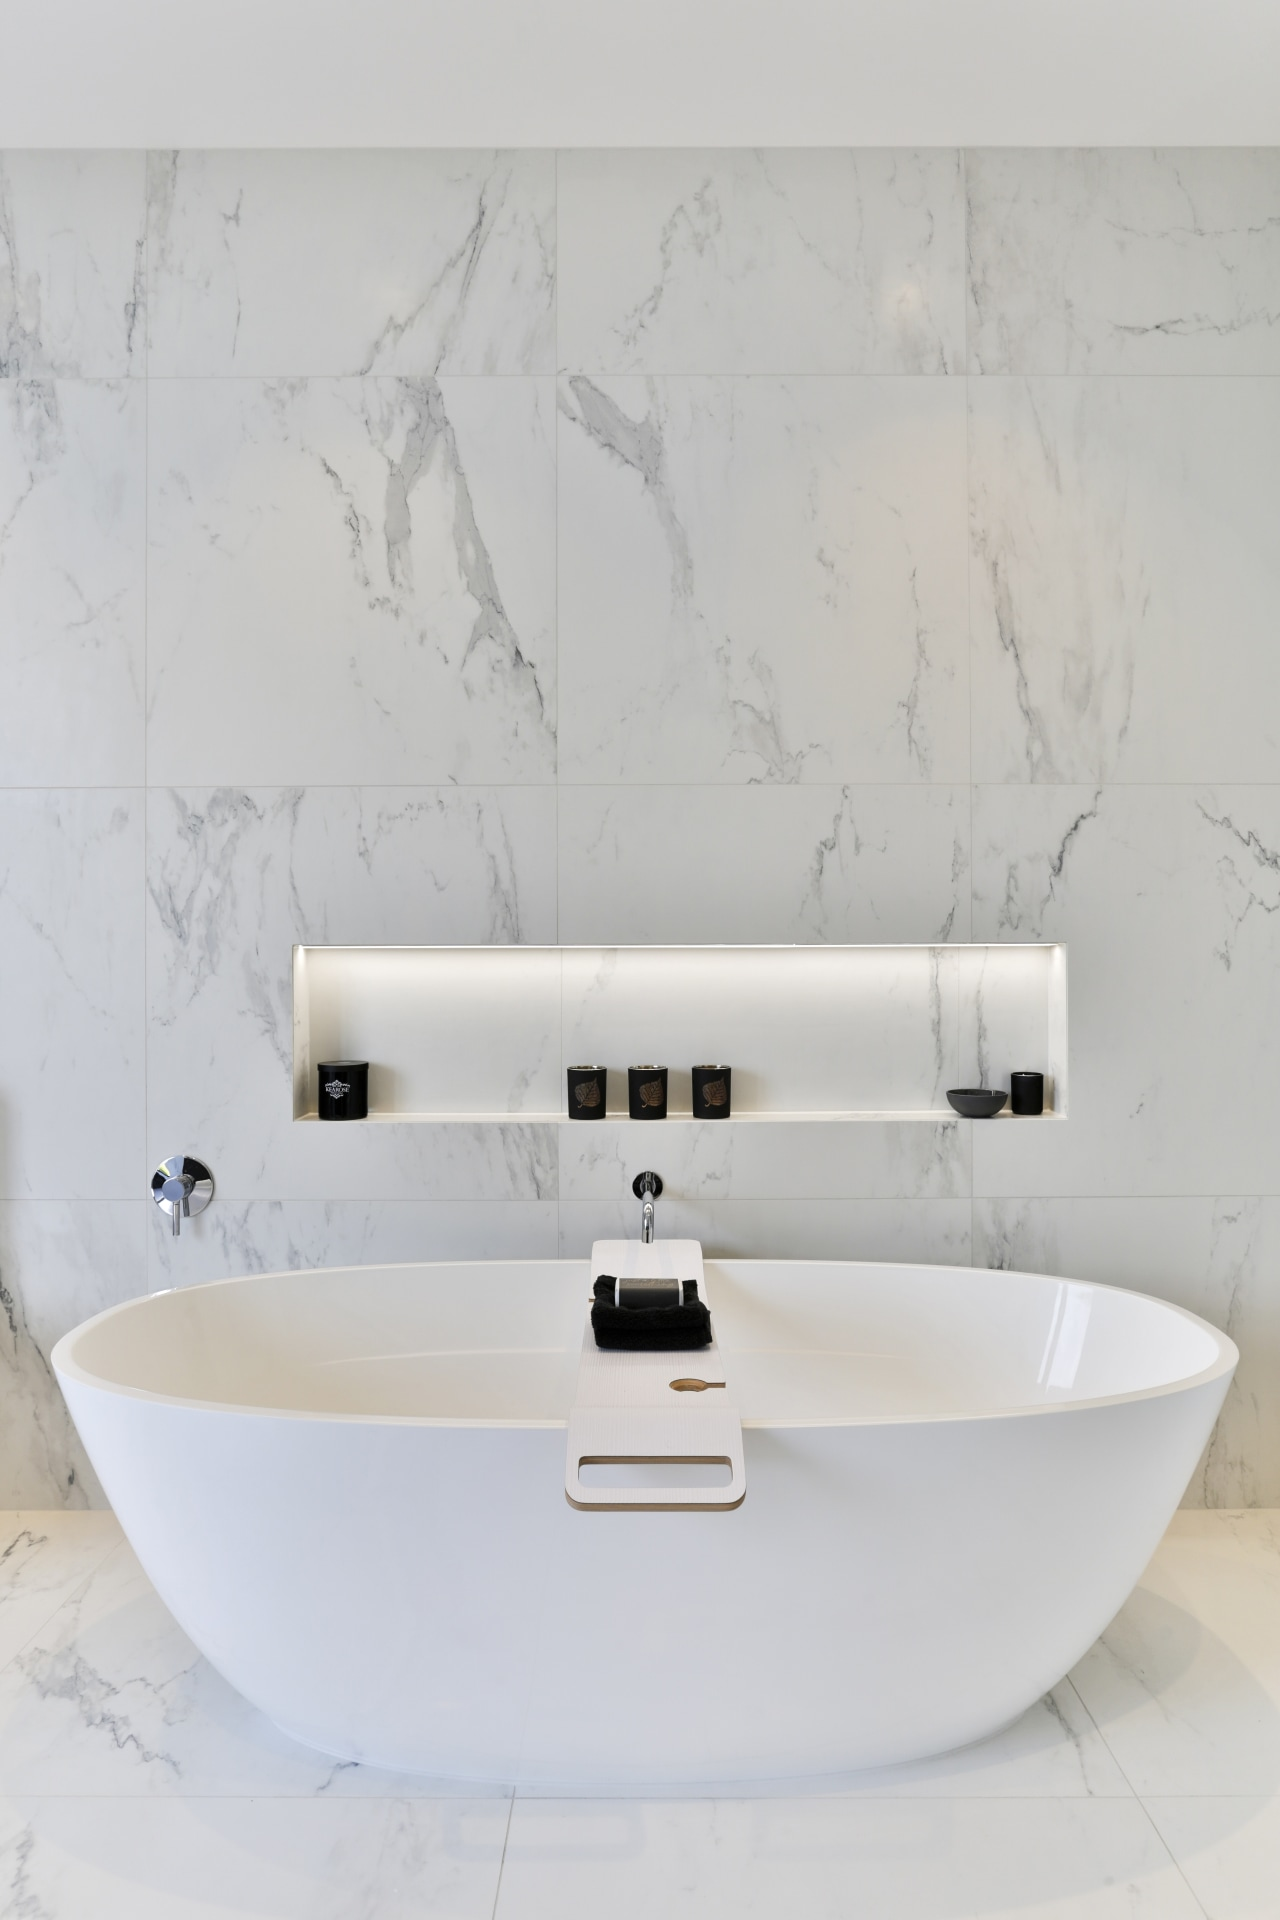 A freestanding tub adds a sculptural element to